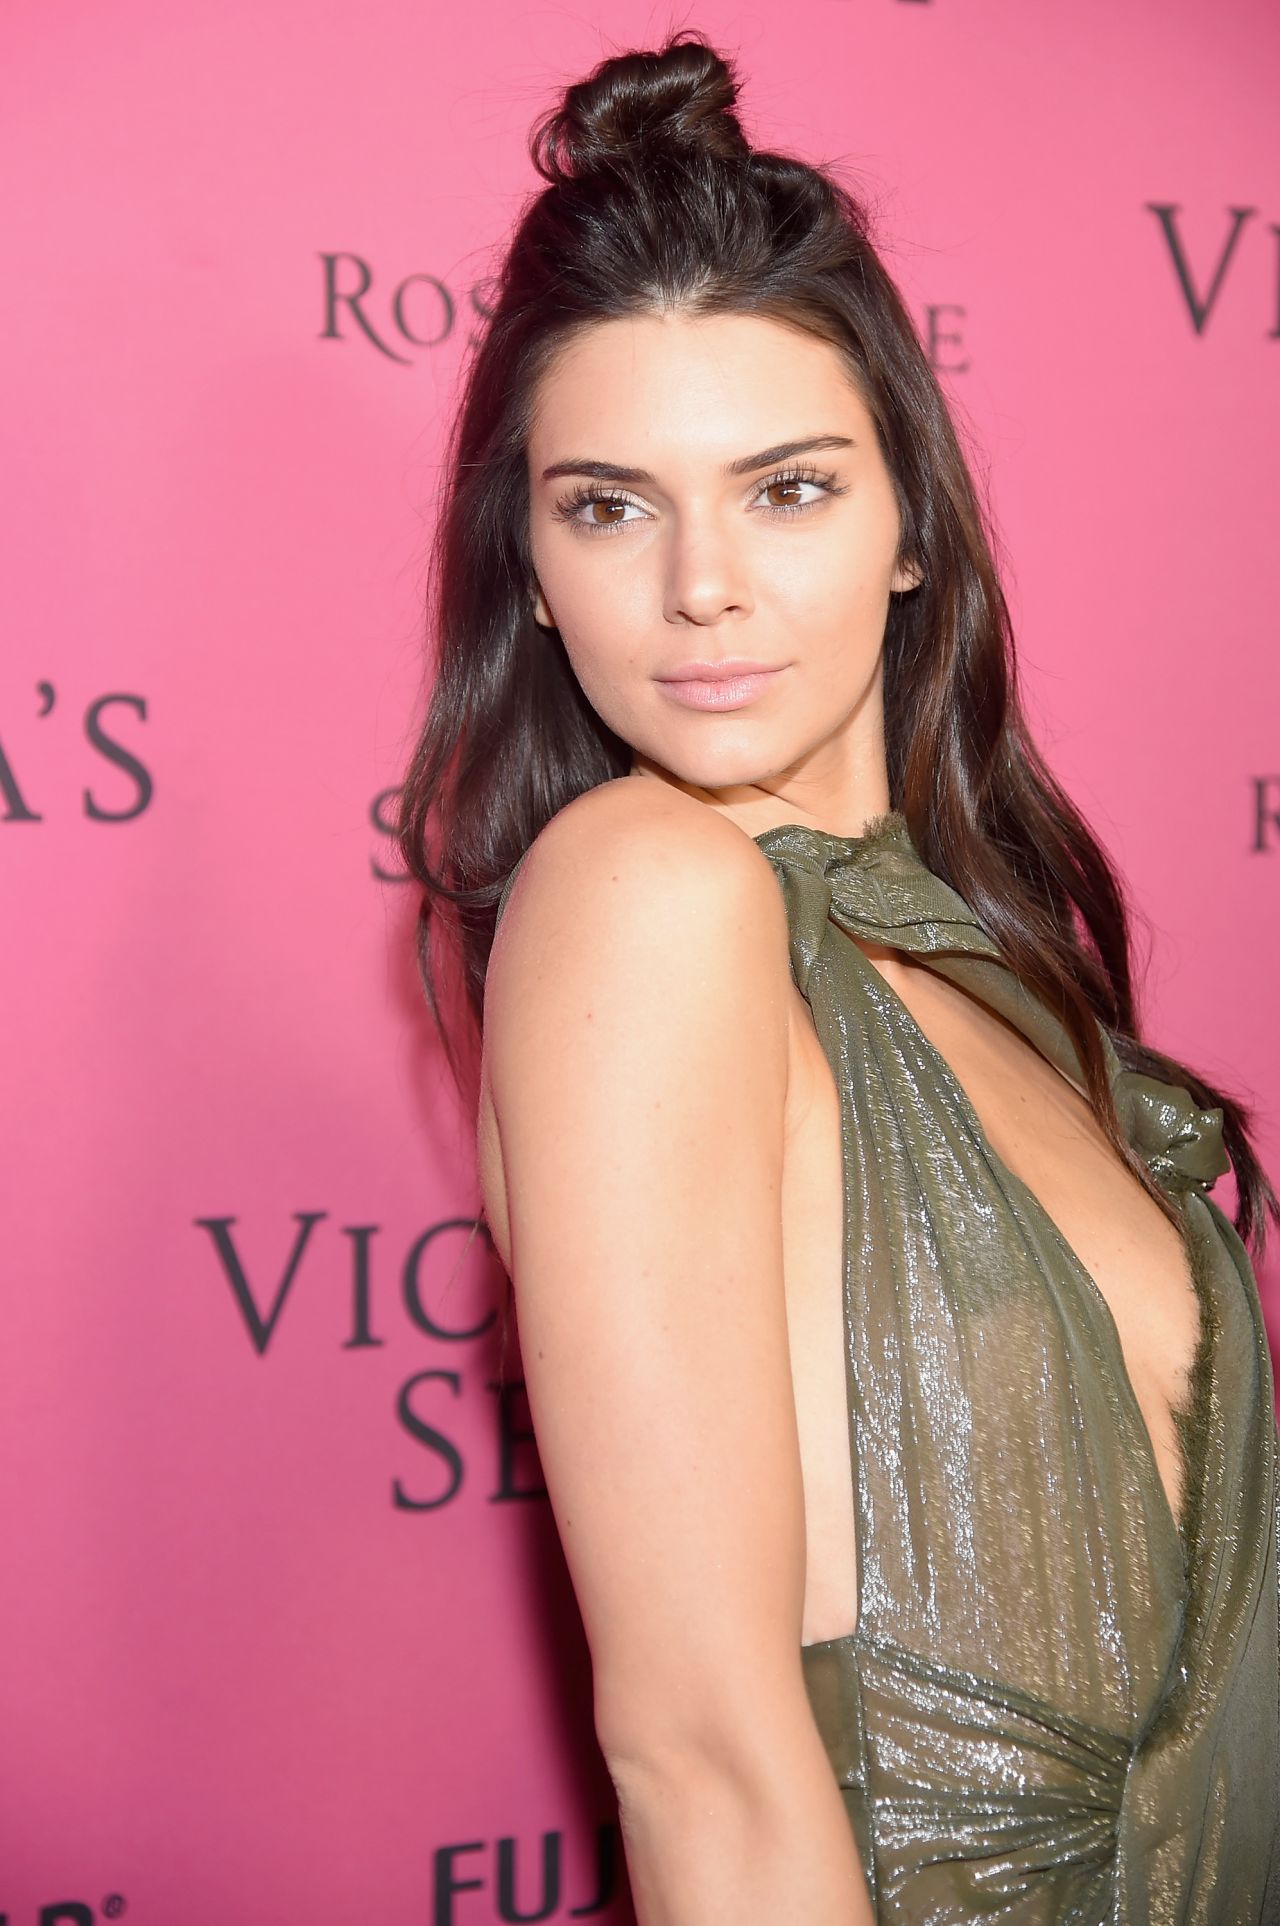 kendall jenner - photo #27